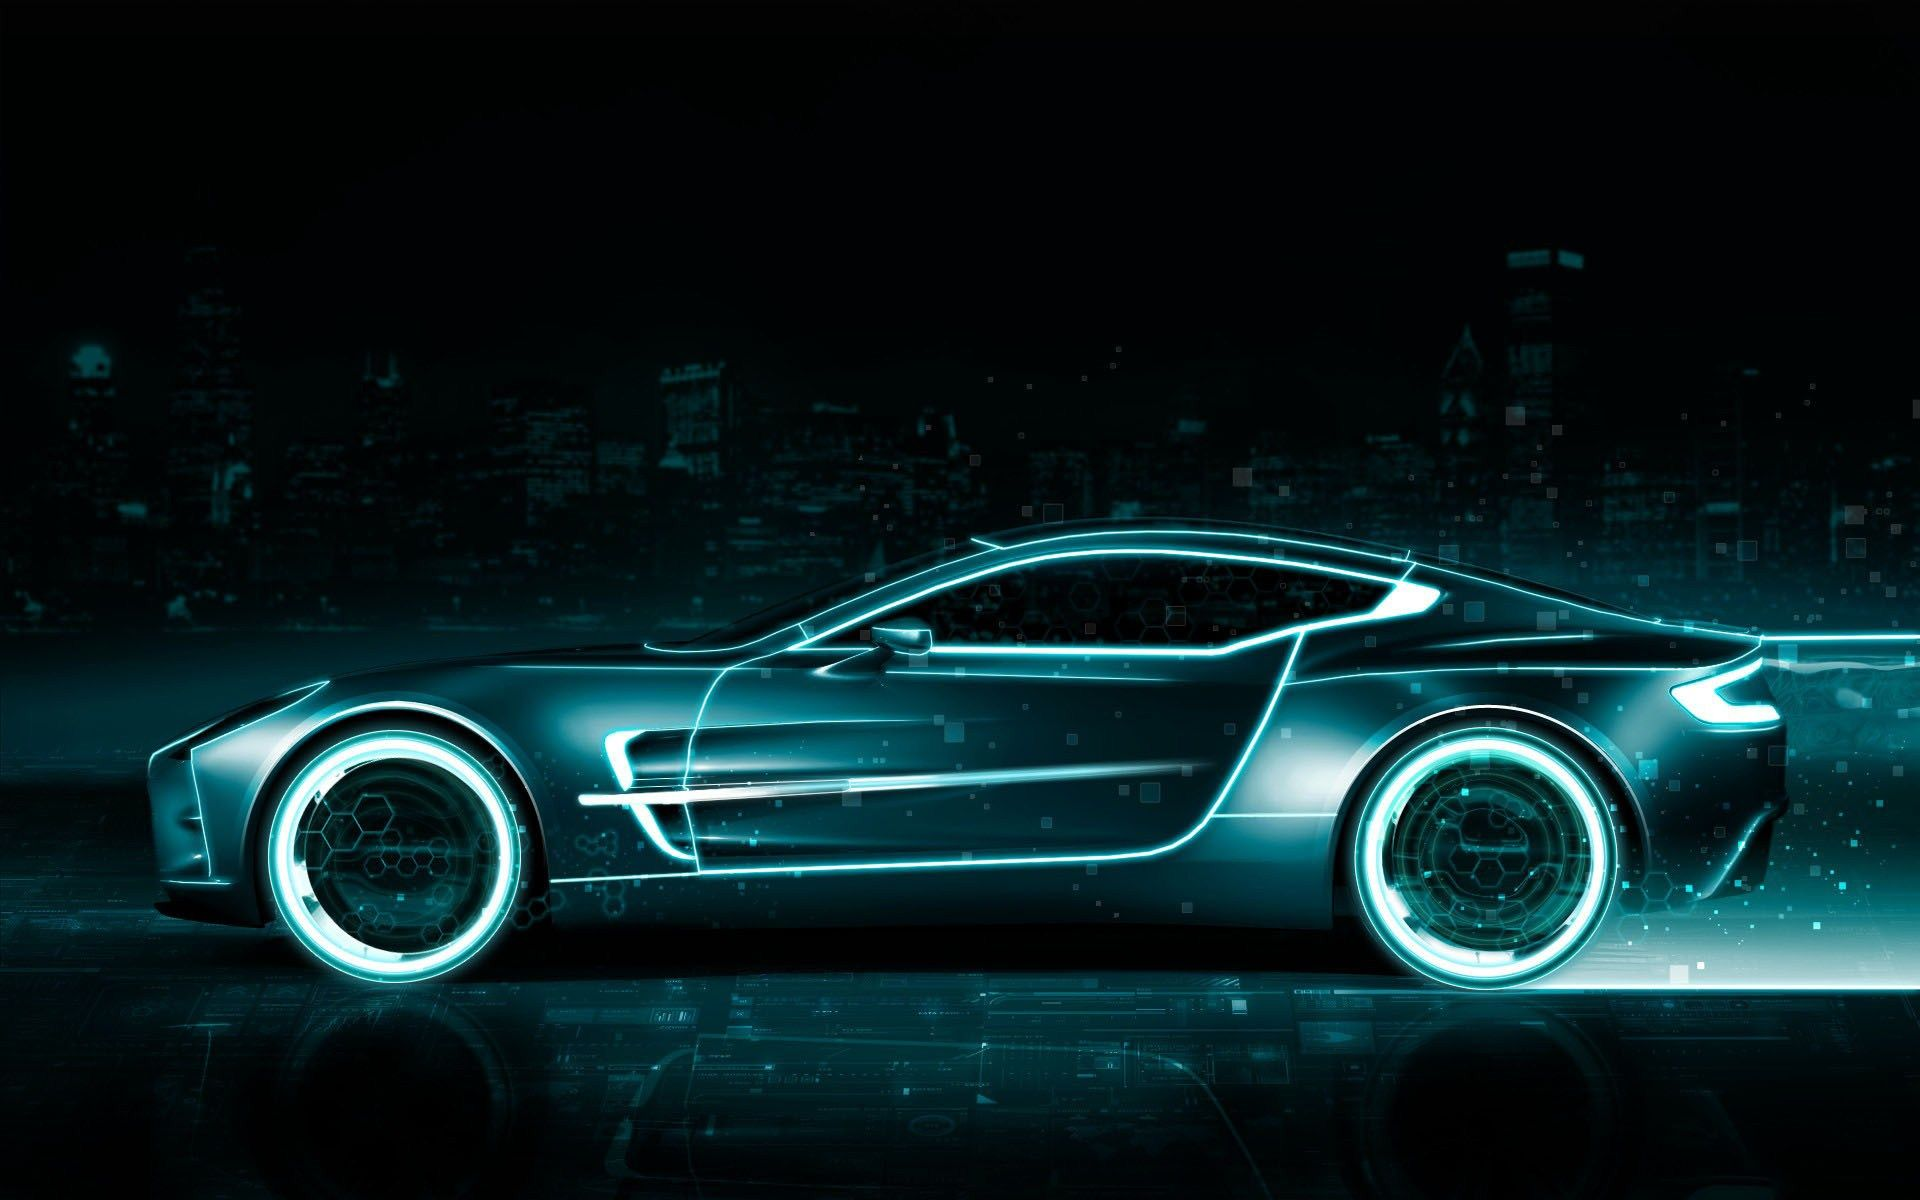 Pix For Neon Car Wallpaper Car Wallpapers Neon Car Tron